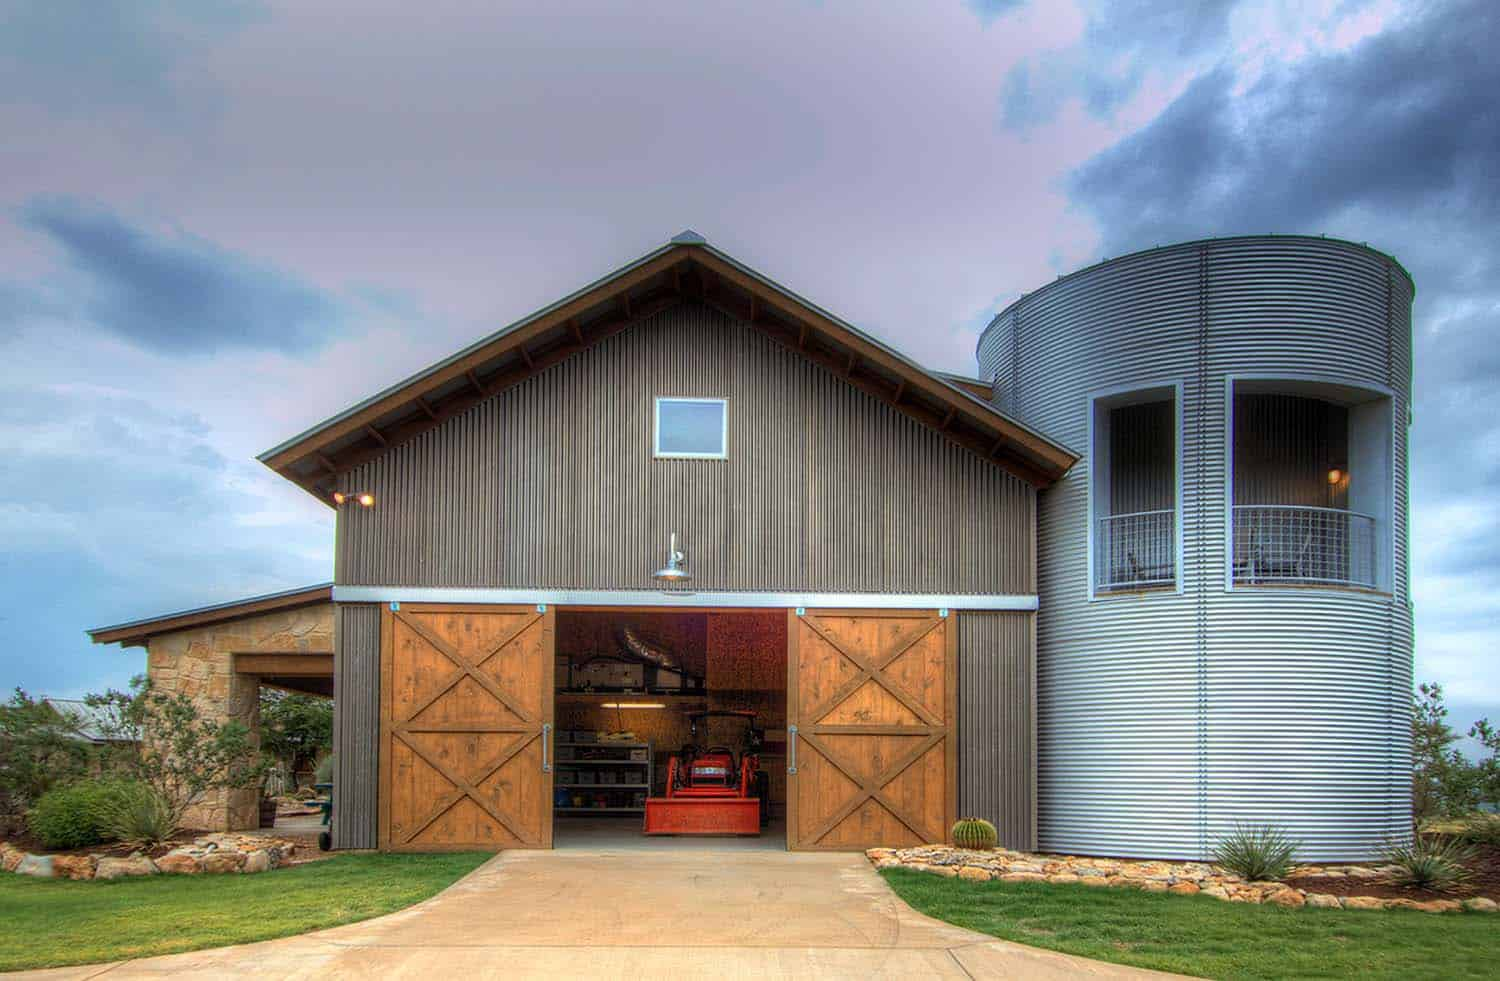 Ranch House-Barn-Burleson Design Group-17-1 Kindesign